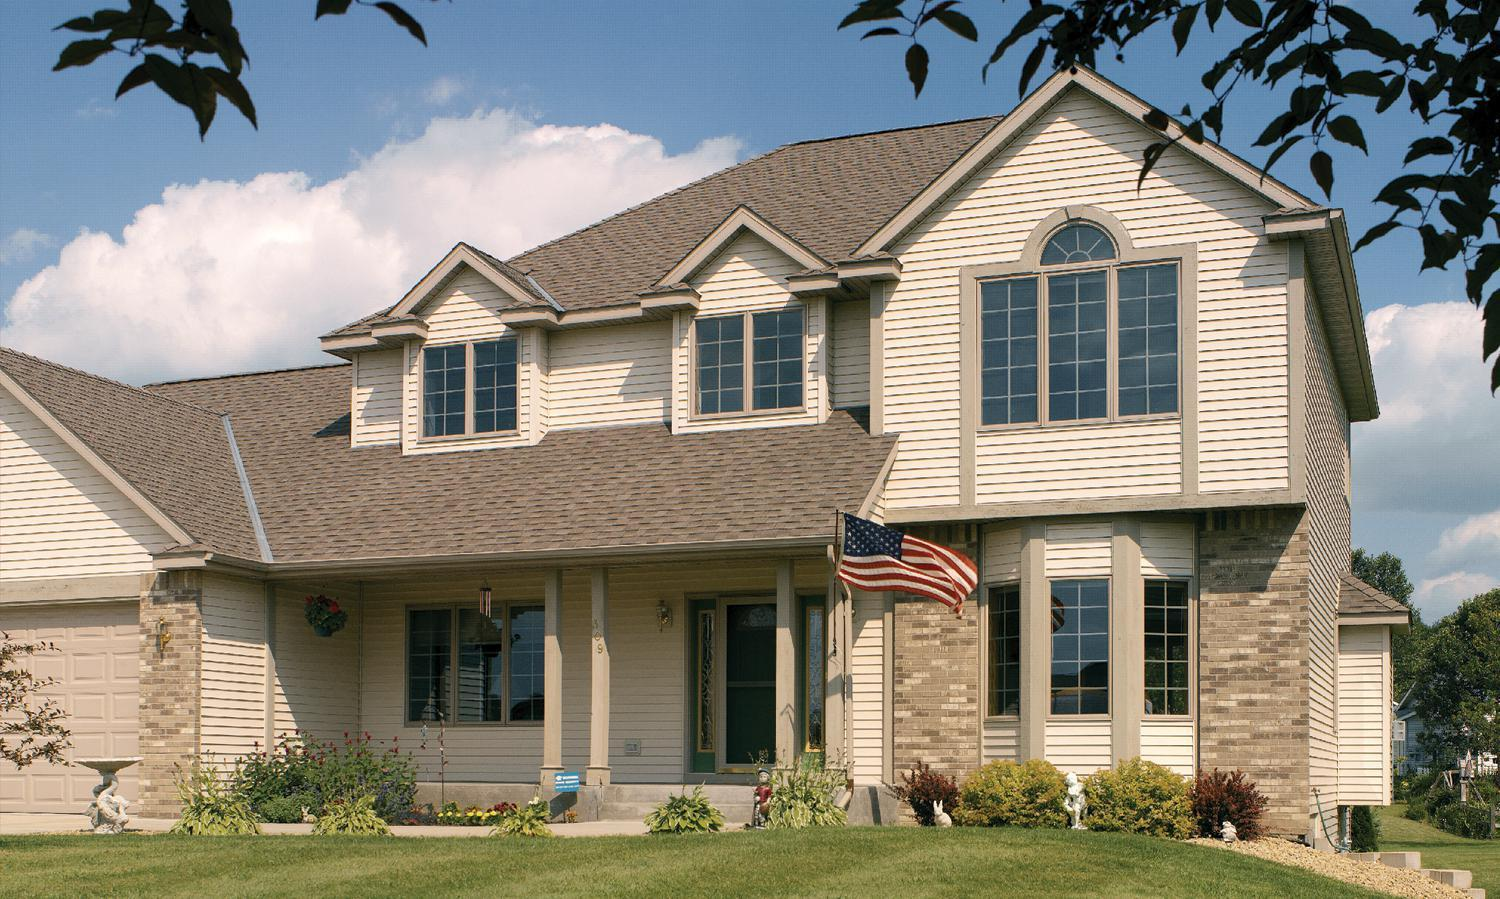 D4 Traditional Lap siding in Wickertone provides for a timeless look that completes the exterior of this home